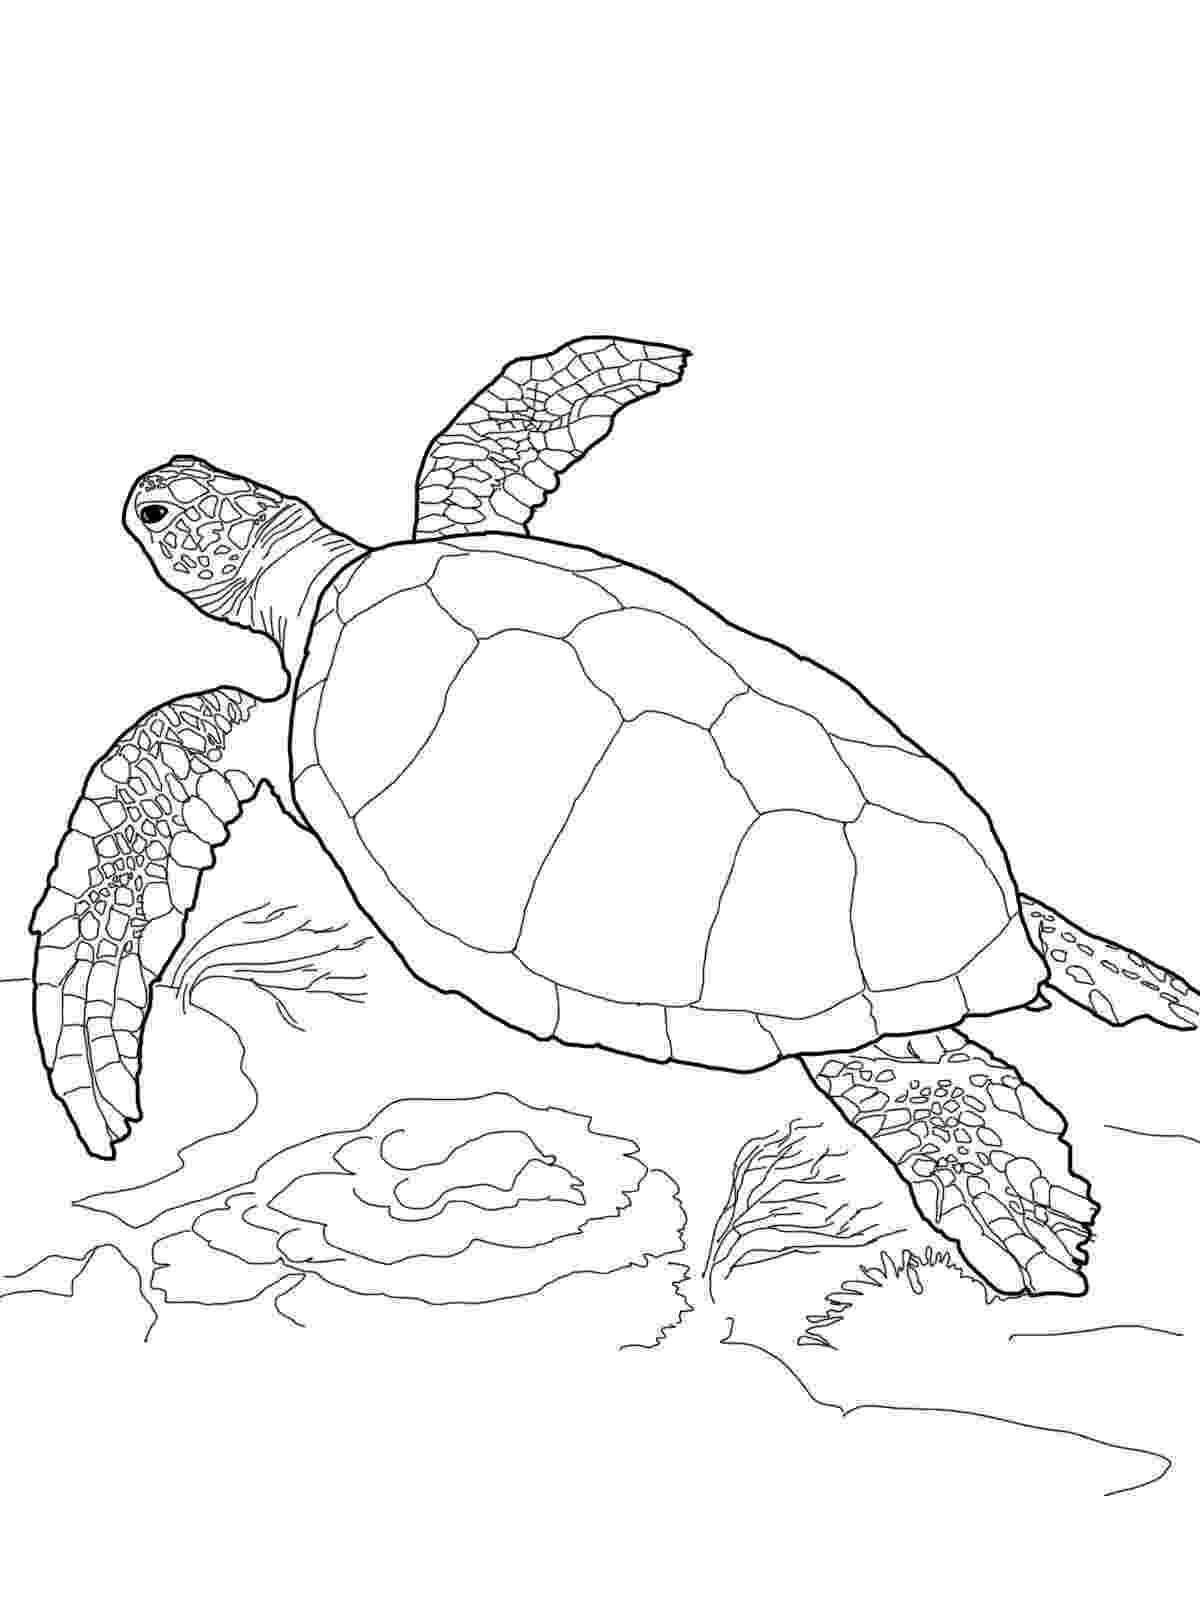 turtle coloring pictures to print sea turtle print out google search turtle coloring coloring print pictures to turtle